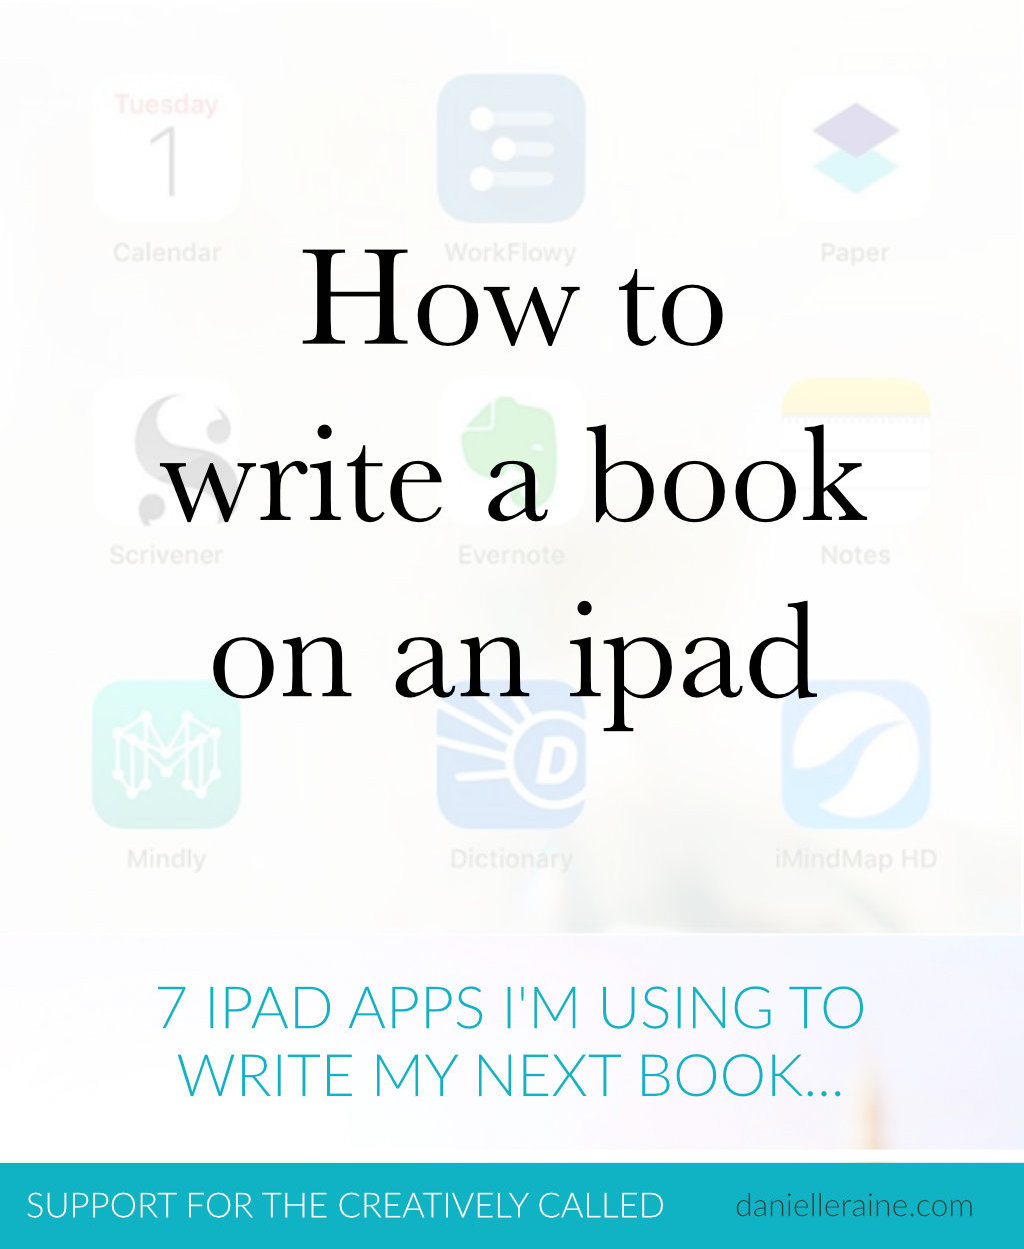 how to write a book on an ipad pin graphic